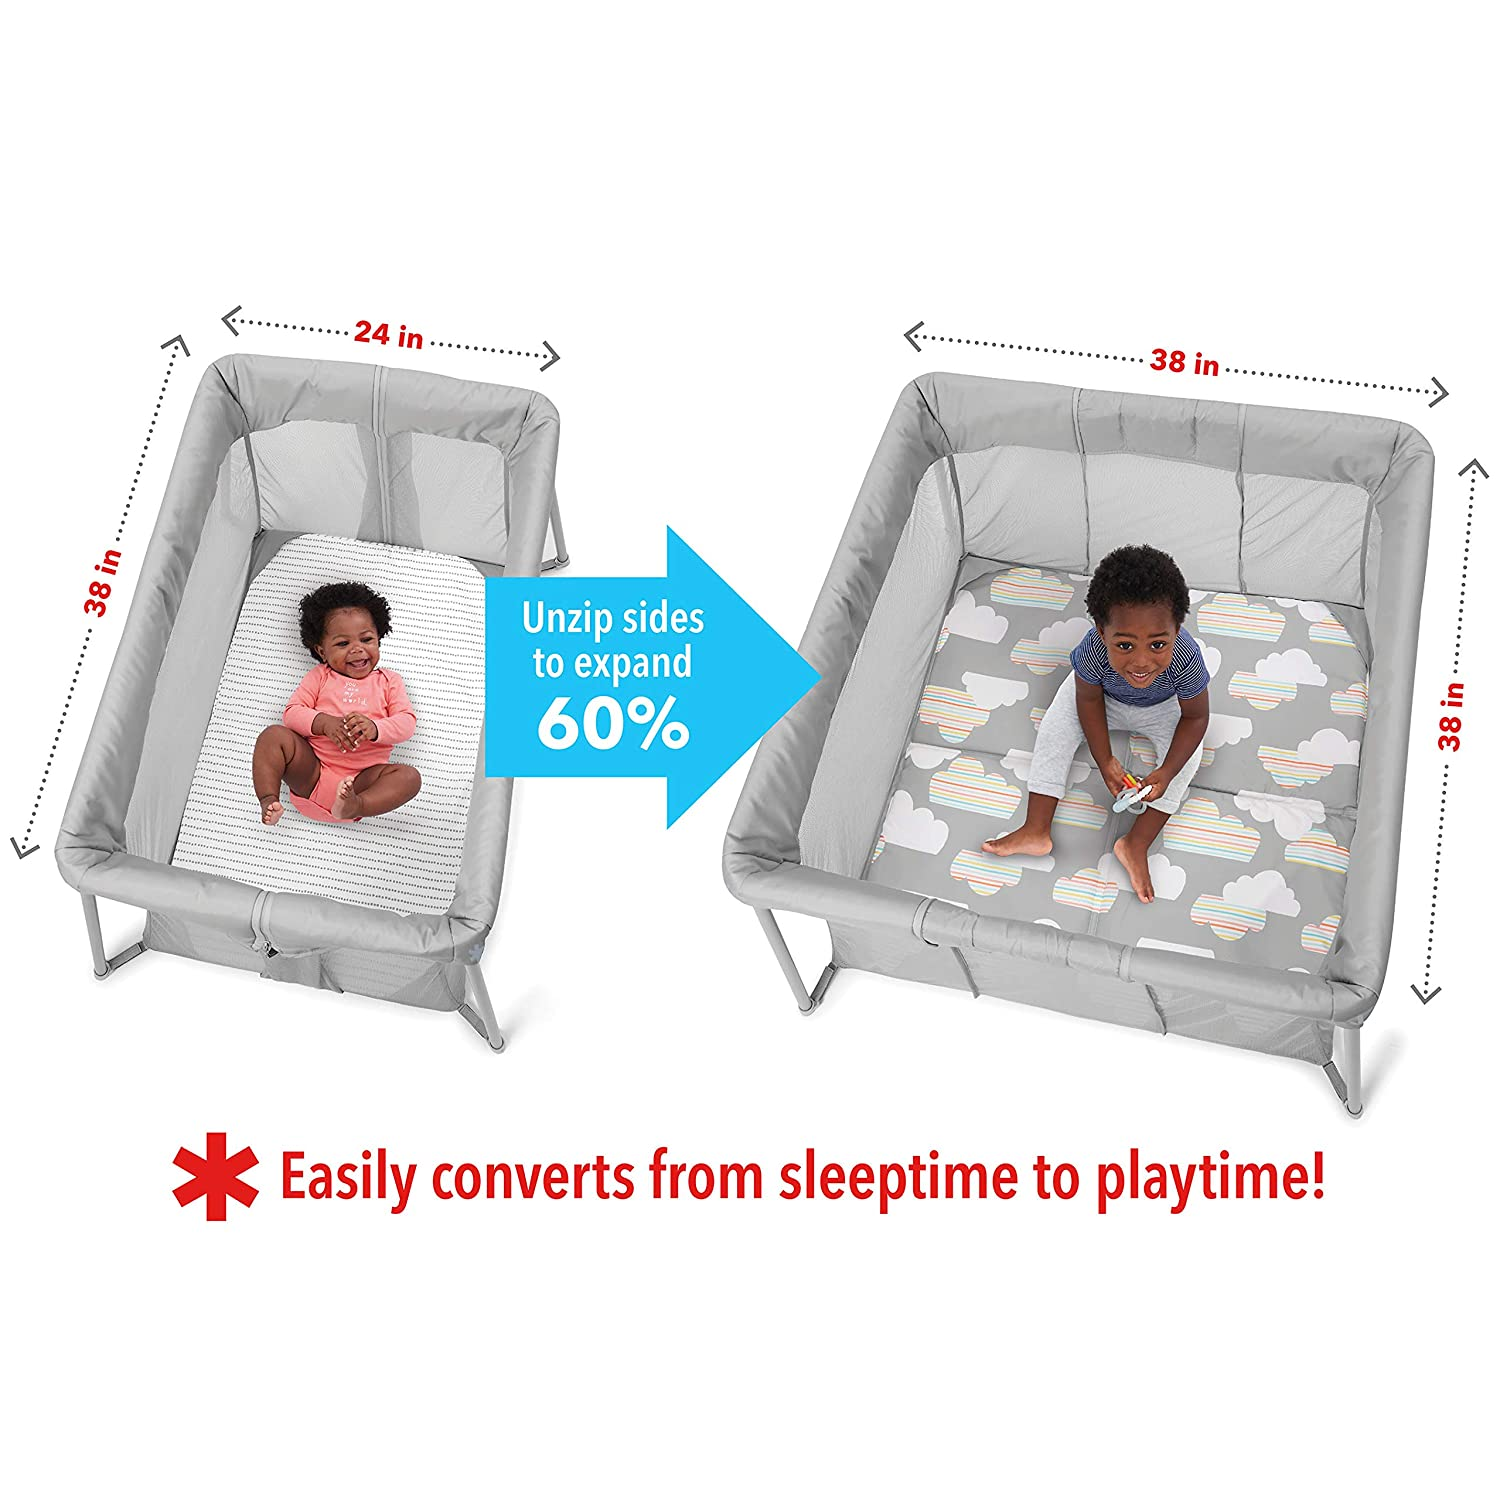 Skip Hop Portable Playard and Foldable Expanding Travel Crib Playpen Play to Night